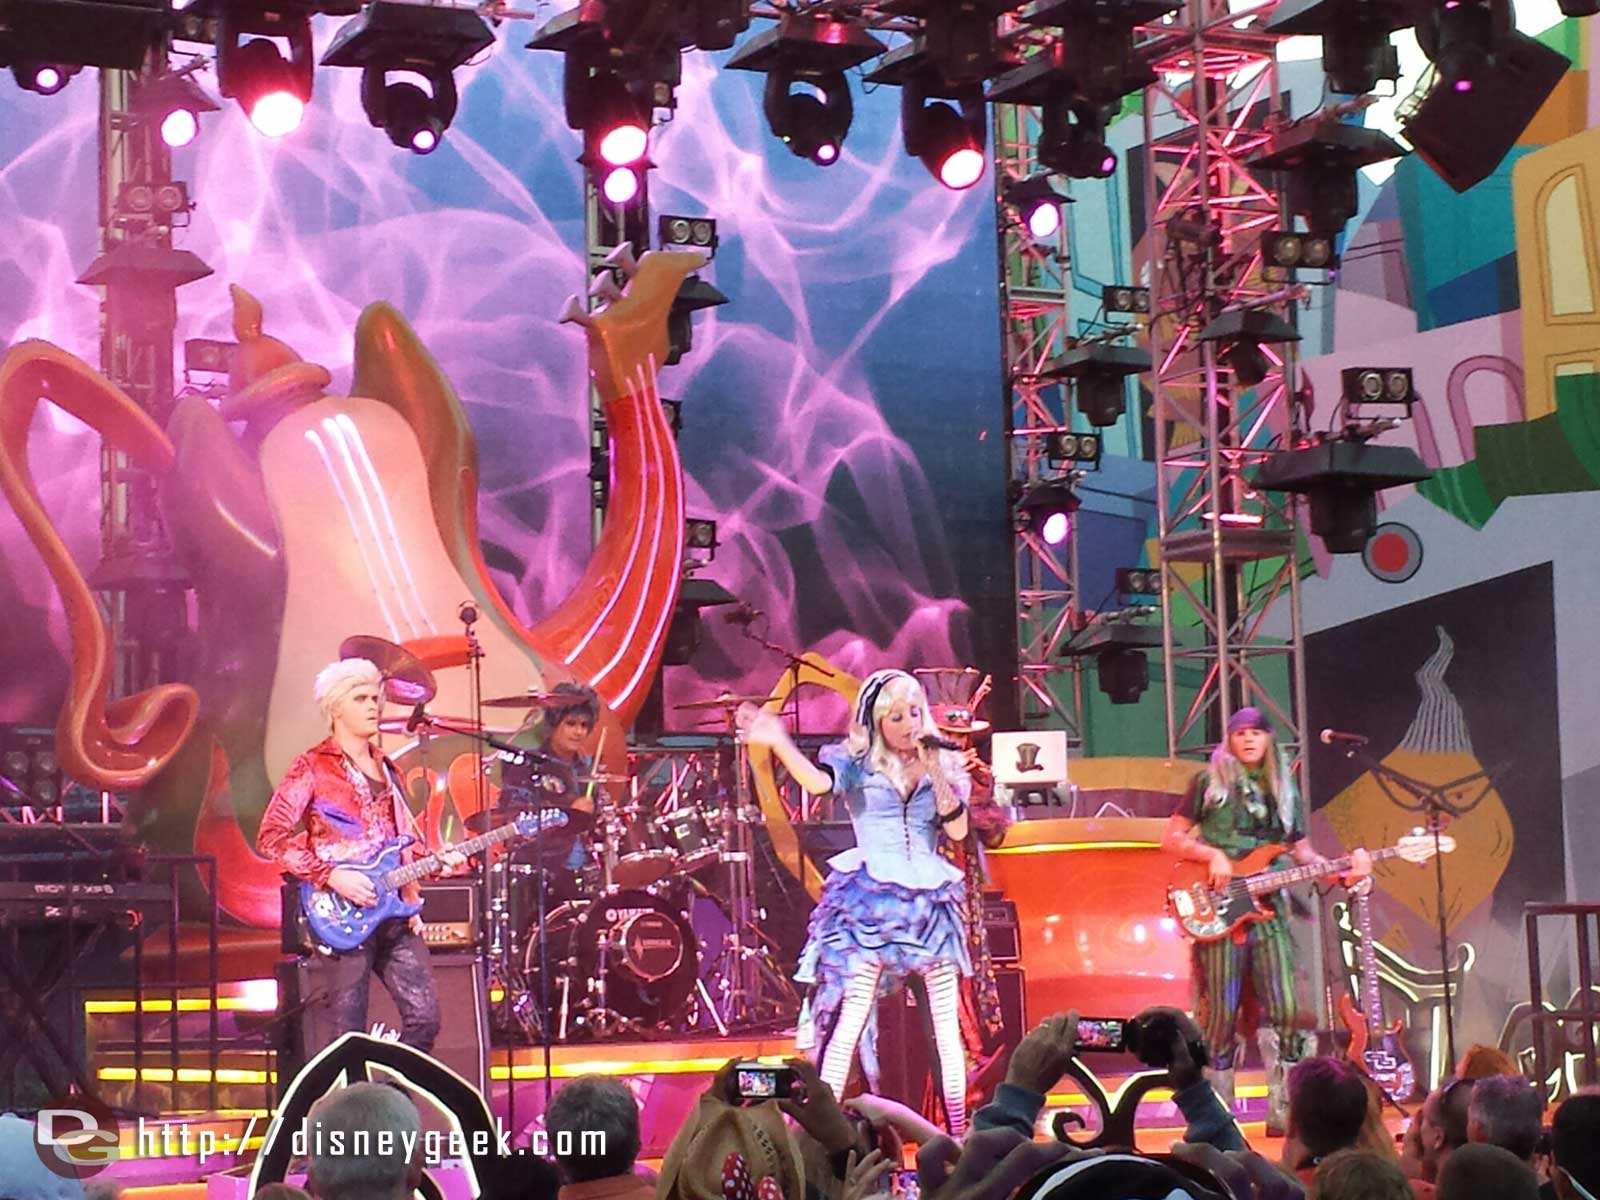 The #MadTParty band